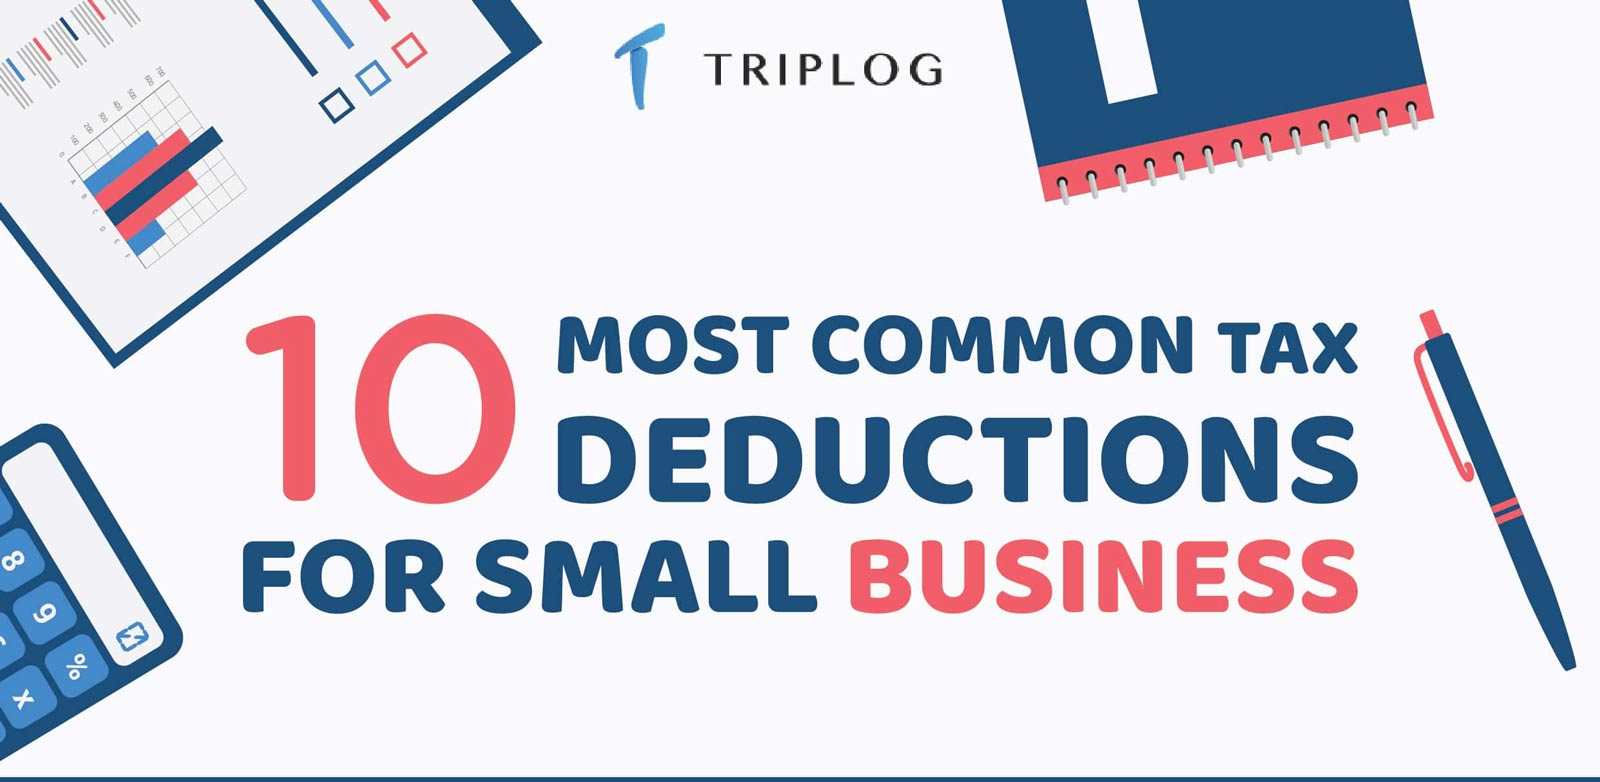 mileage deductions small business